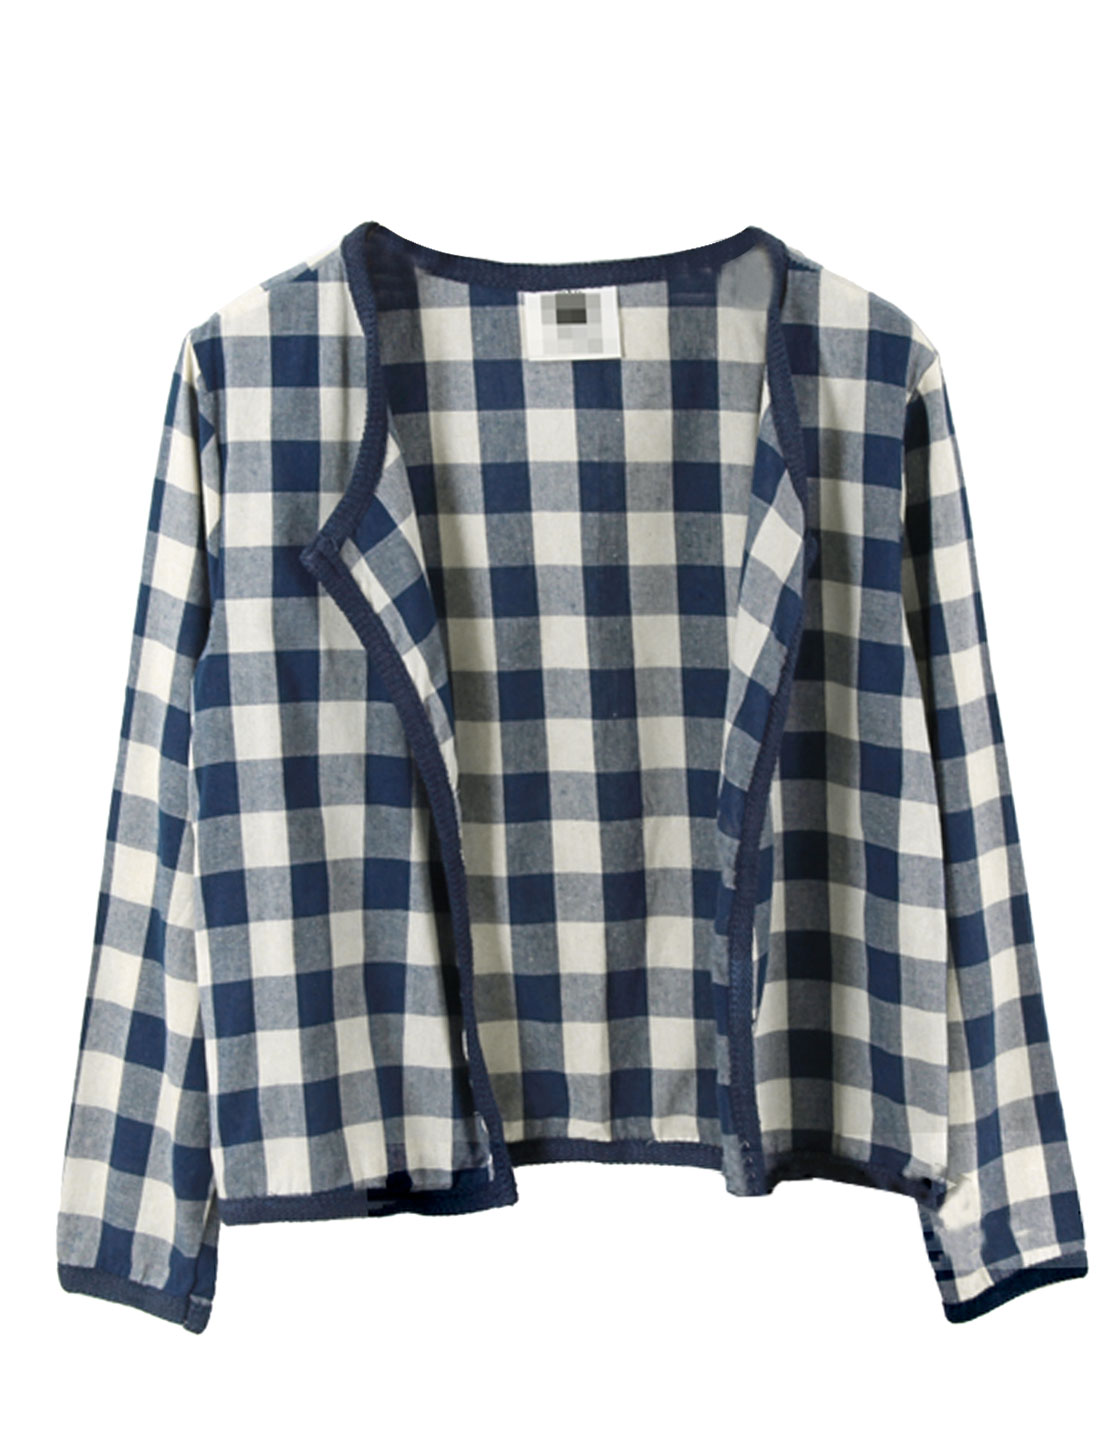 Lady Plaids Pattern Front Opening Casual Cardigan White Blue S